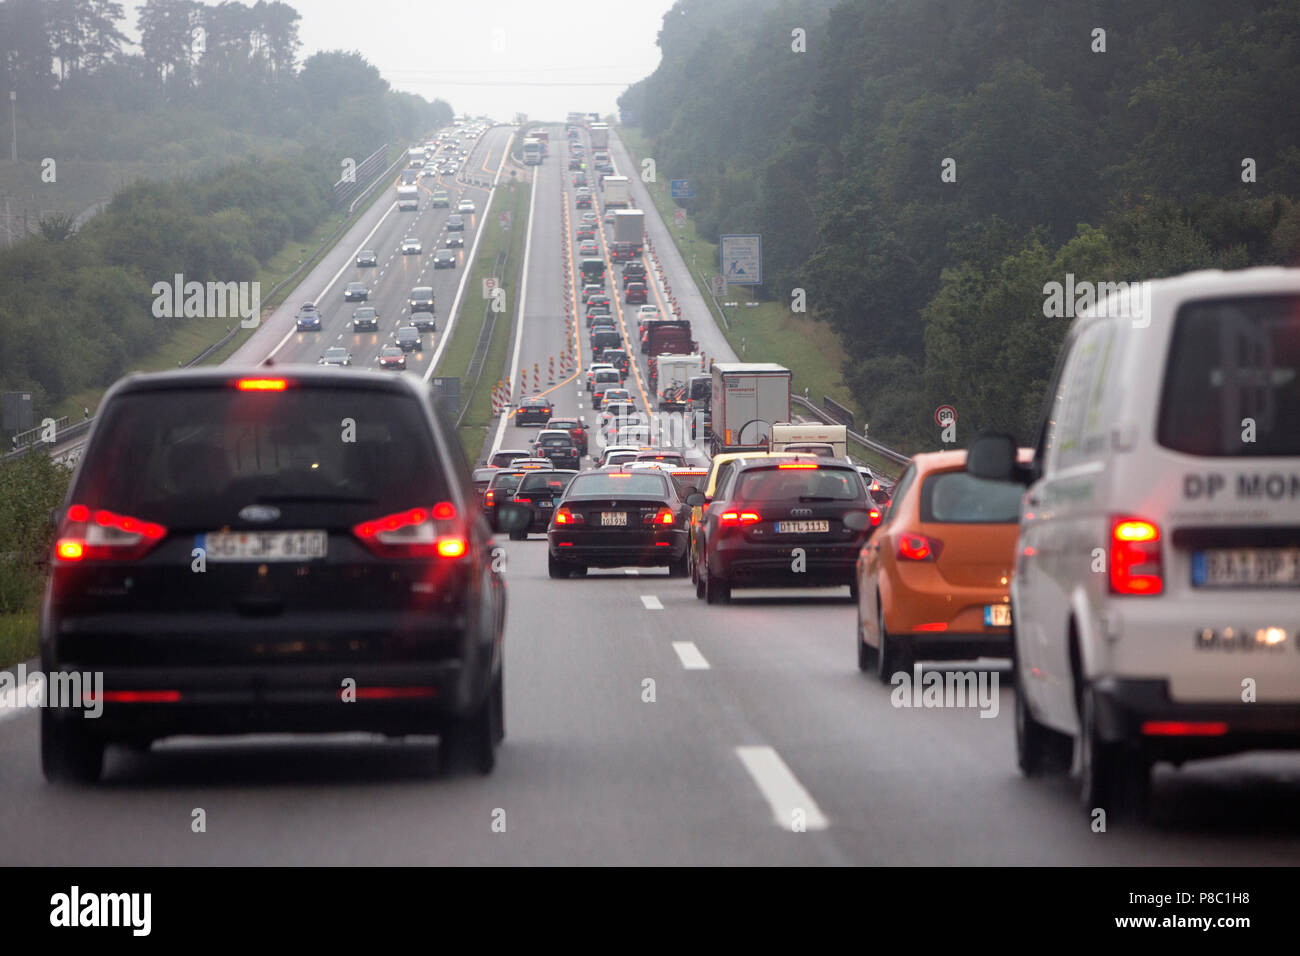 Bitterfeld-Wolfen, Germany, road constriction due to construction work on the A9 towards Berlin - Stock Image